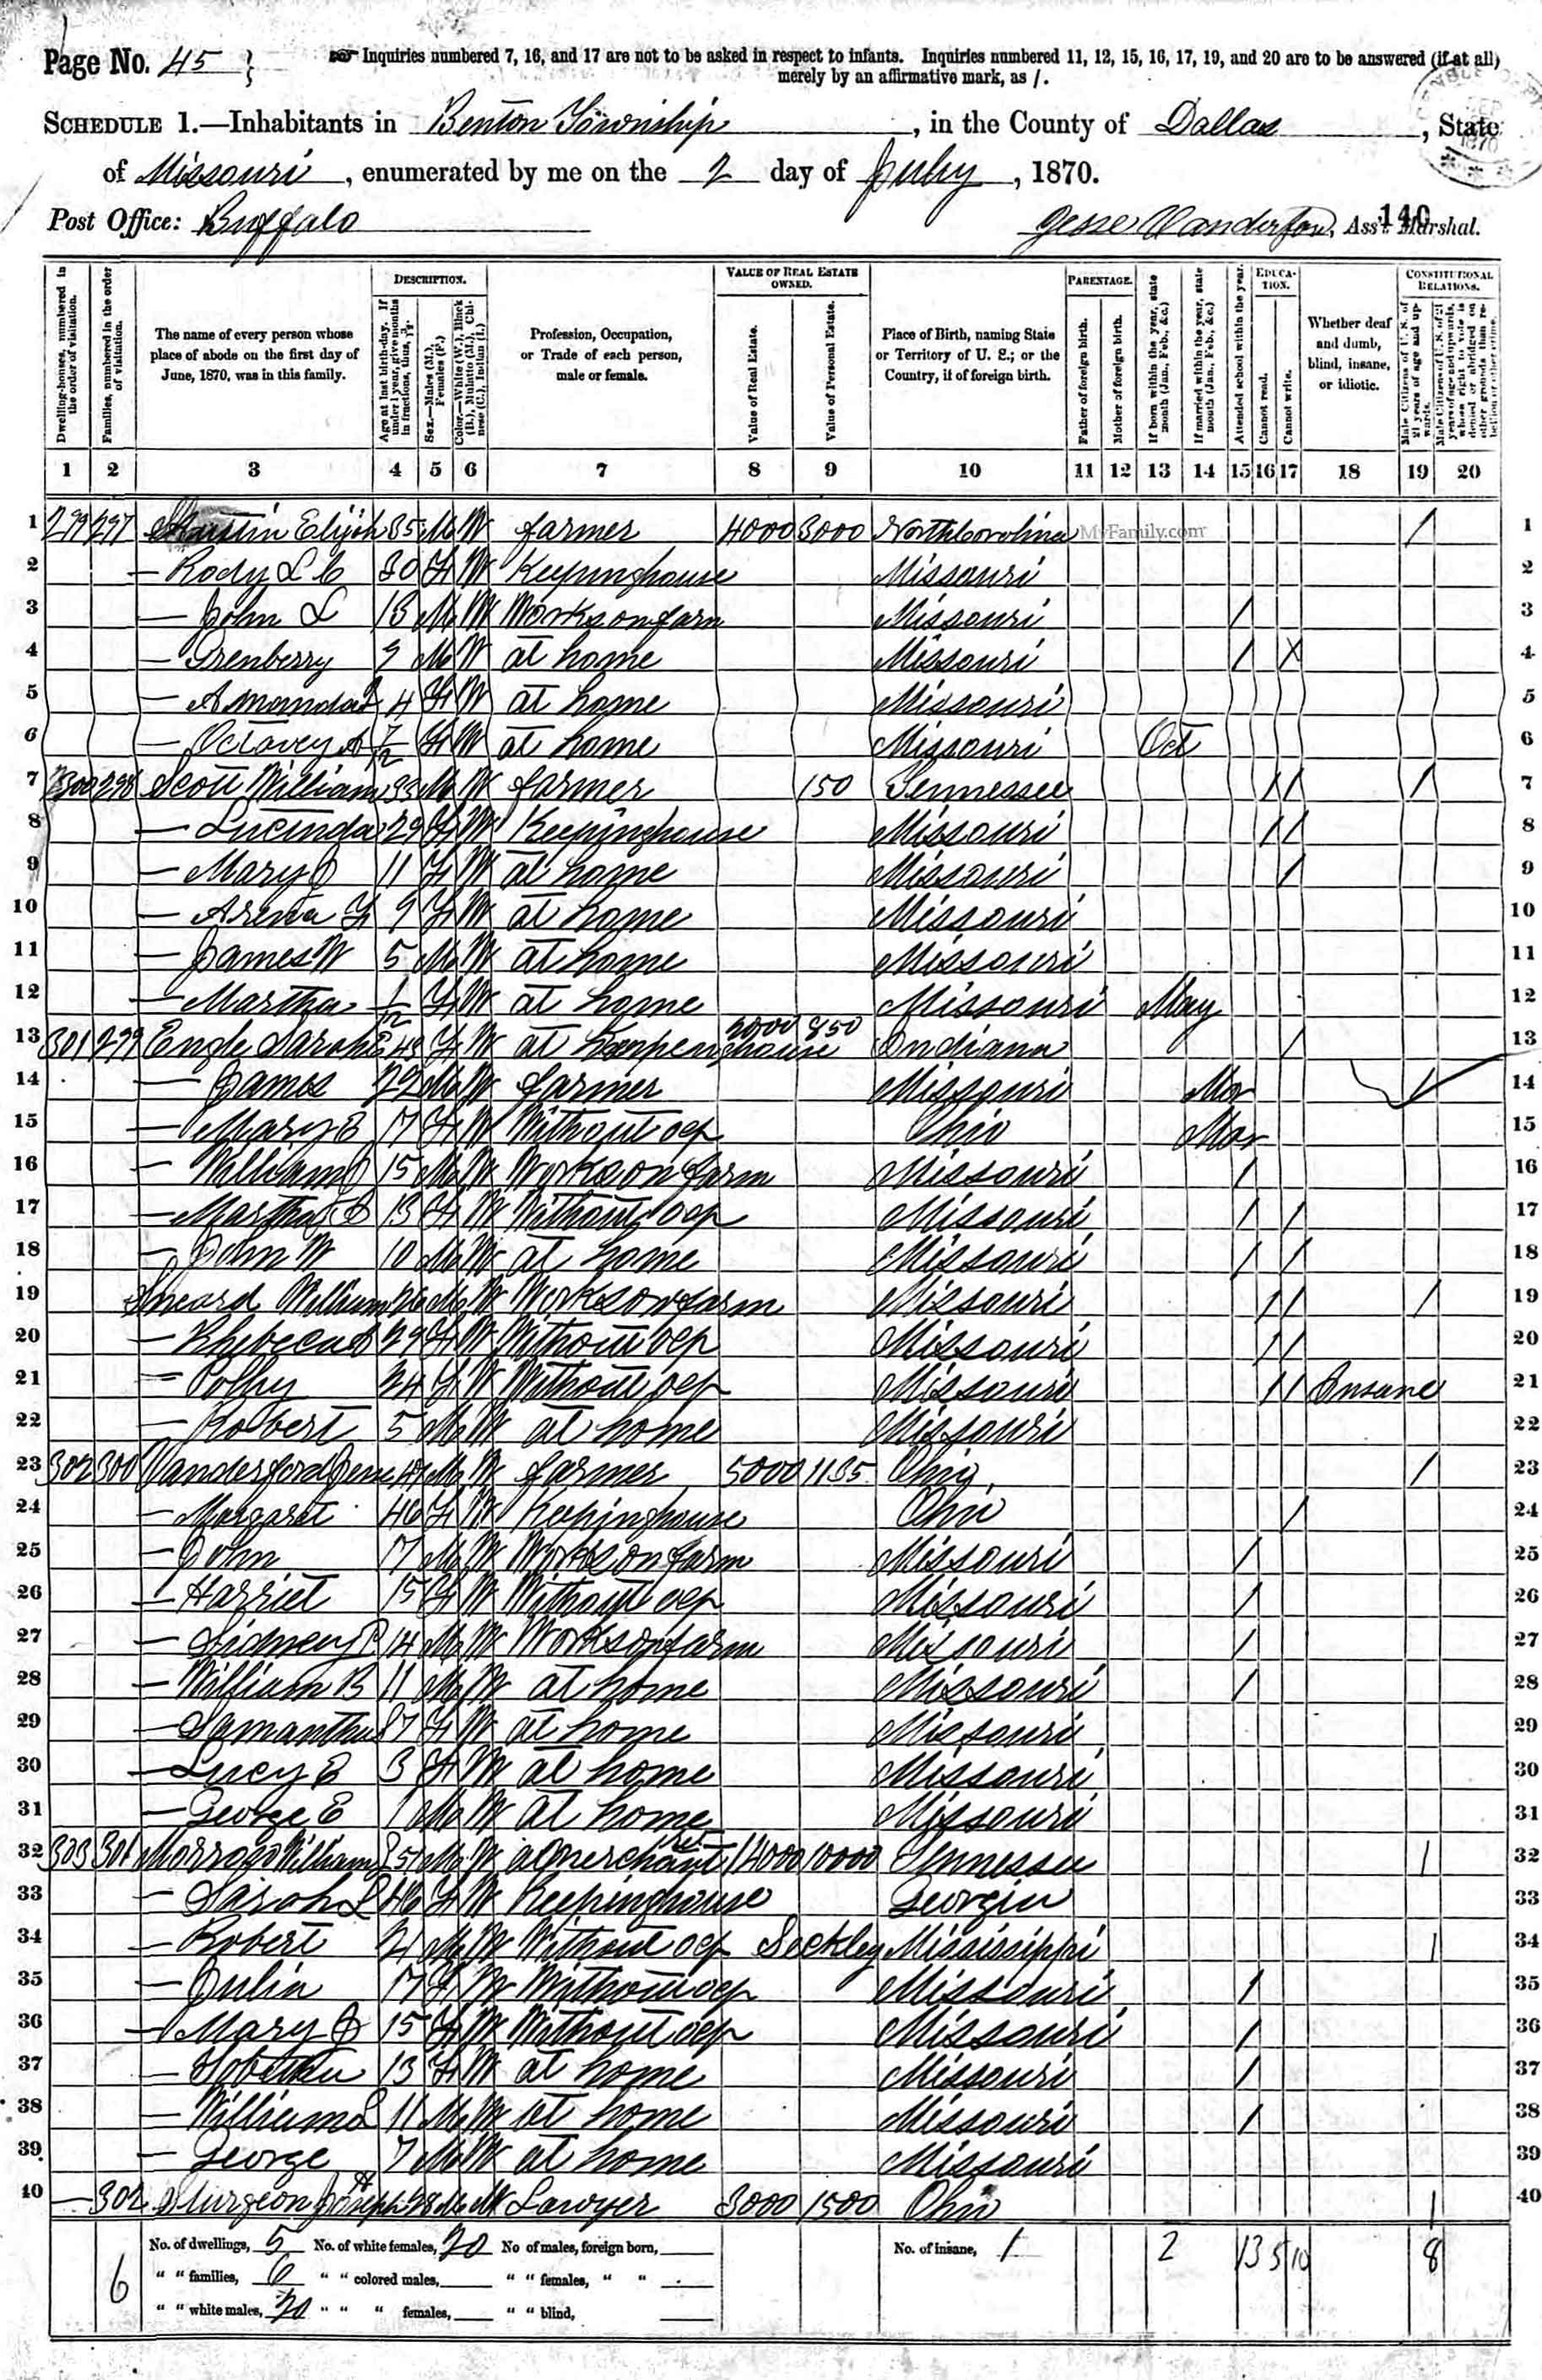 Jesse vanderford 3018 b nov 11 1822 in ohio d sept 22 jesse was the asst marshall and took the census for all of dallas county he had some difficulties since they did not send him enough pages and they aiddatafo Image collections